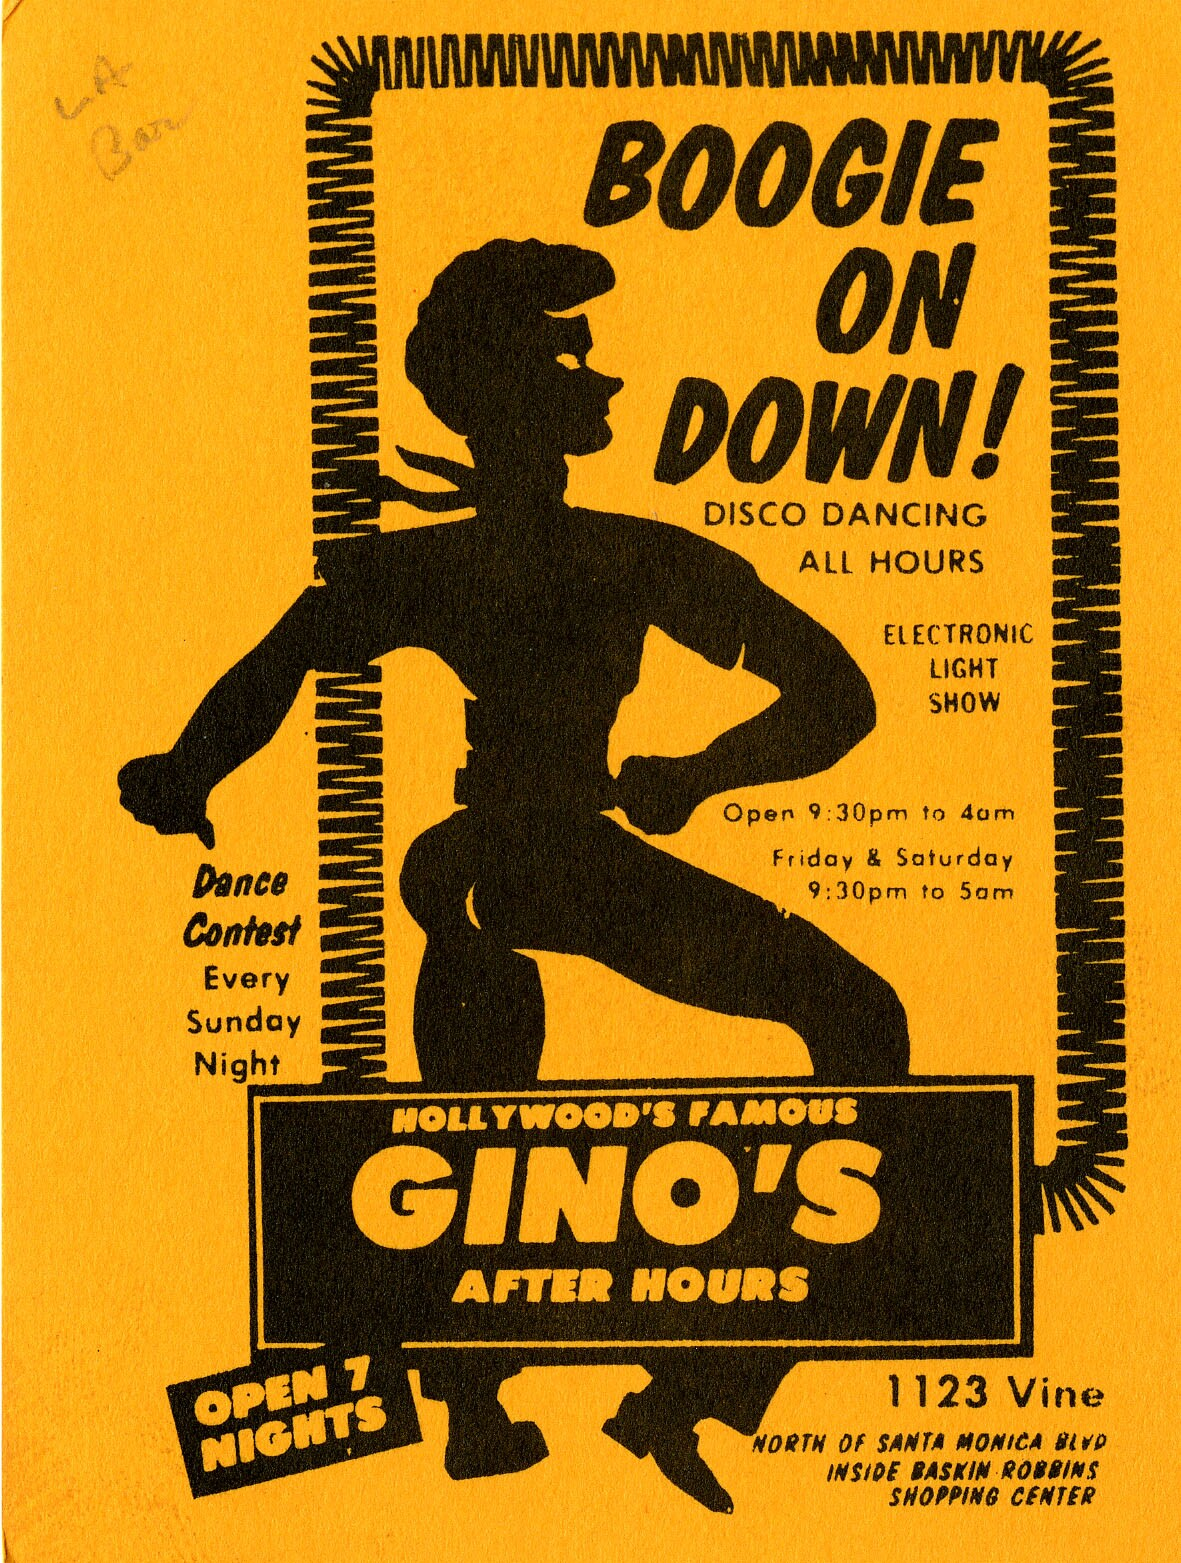 Boogie on Down to Gino's